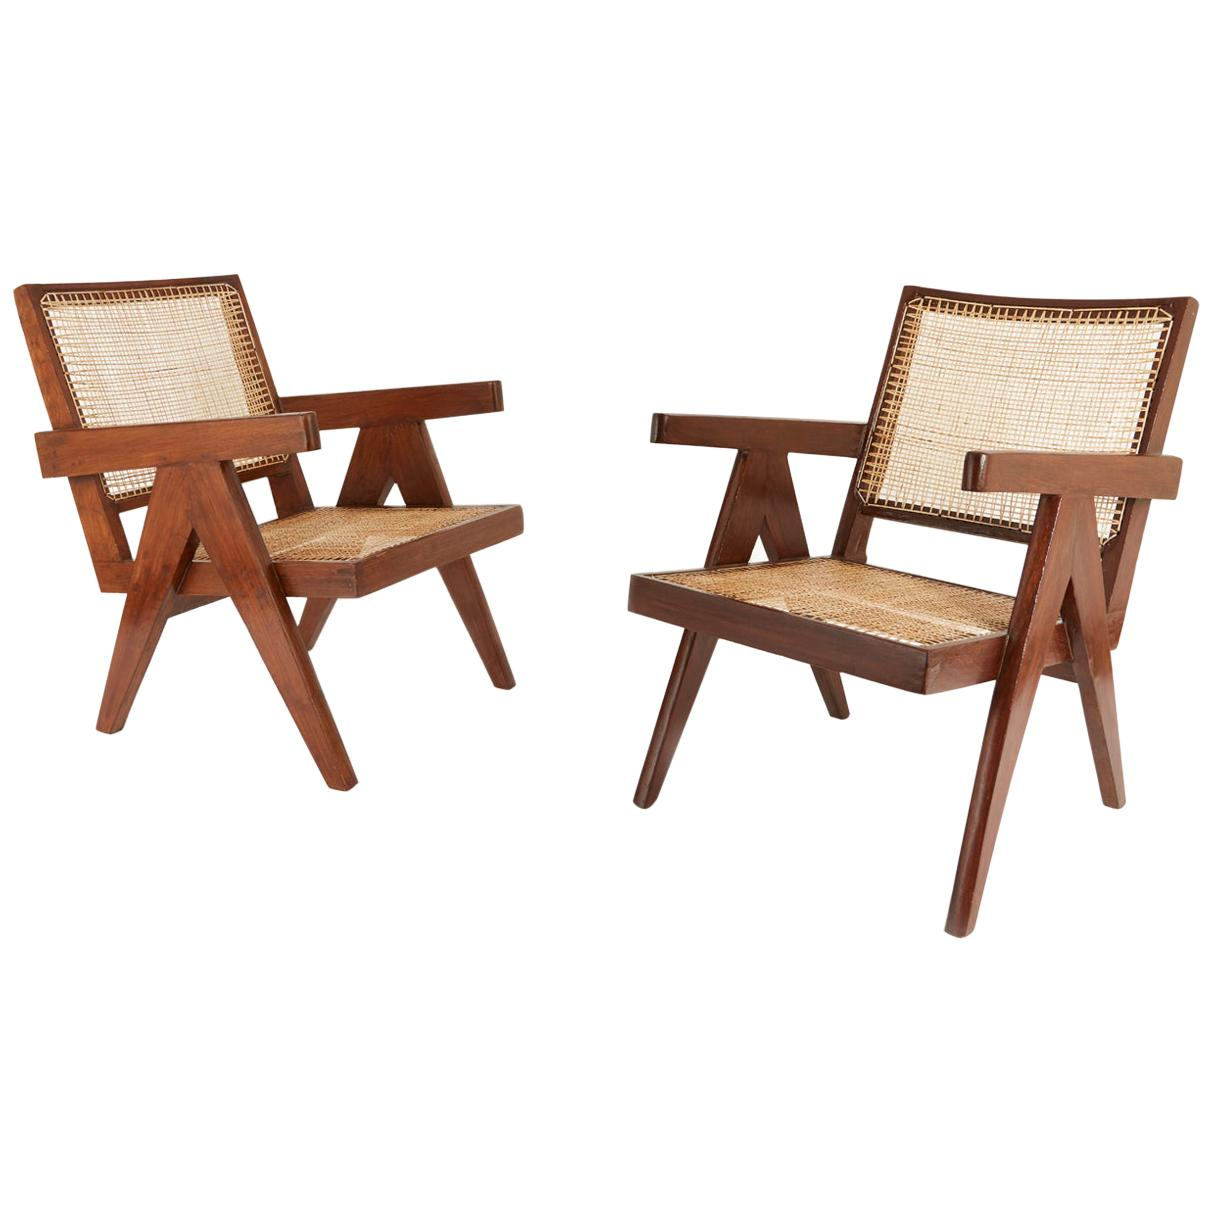 Pair of Pierre Jeanneret Easy Chairs with Rare Stencil Marks